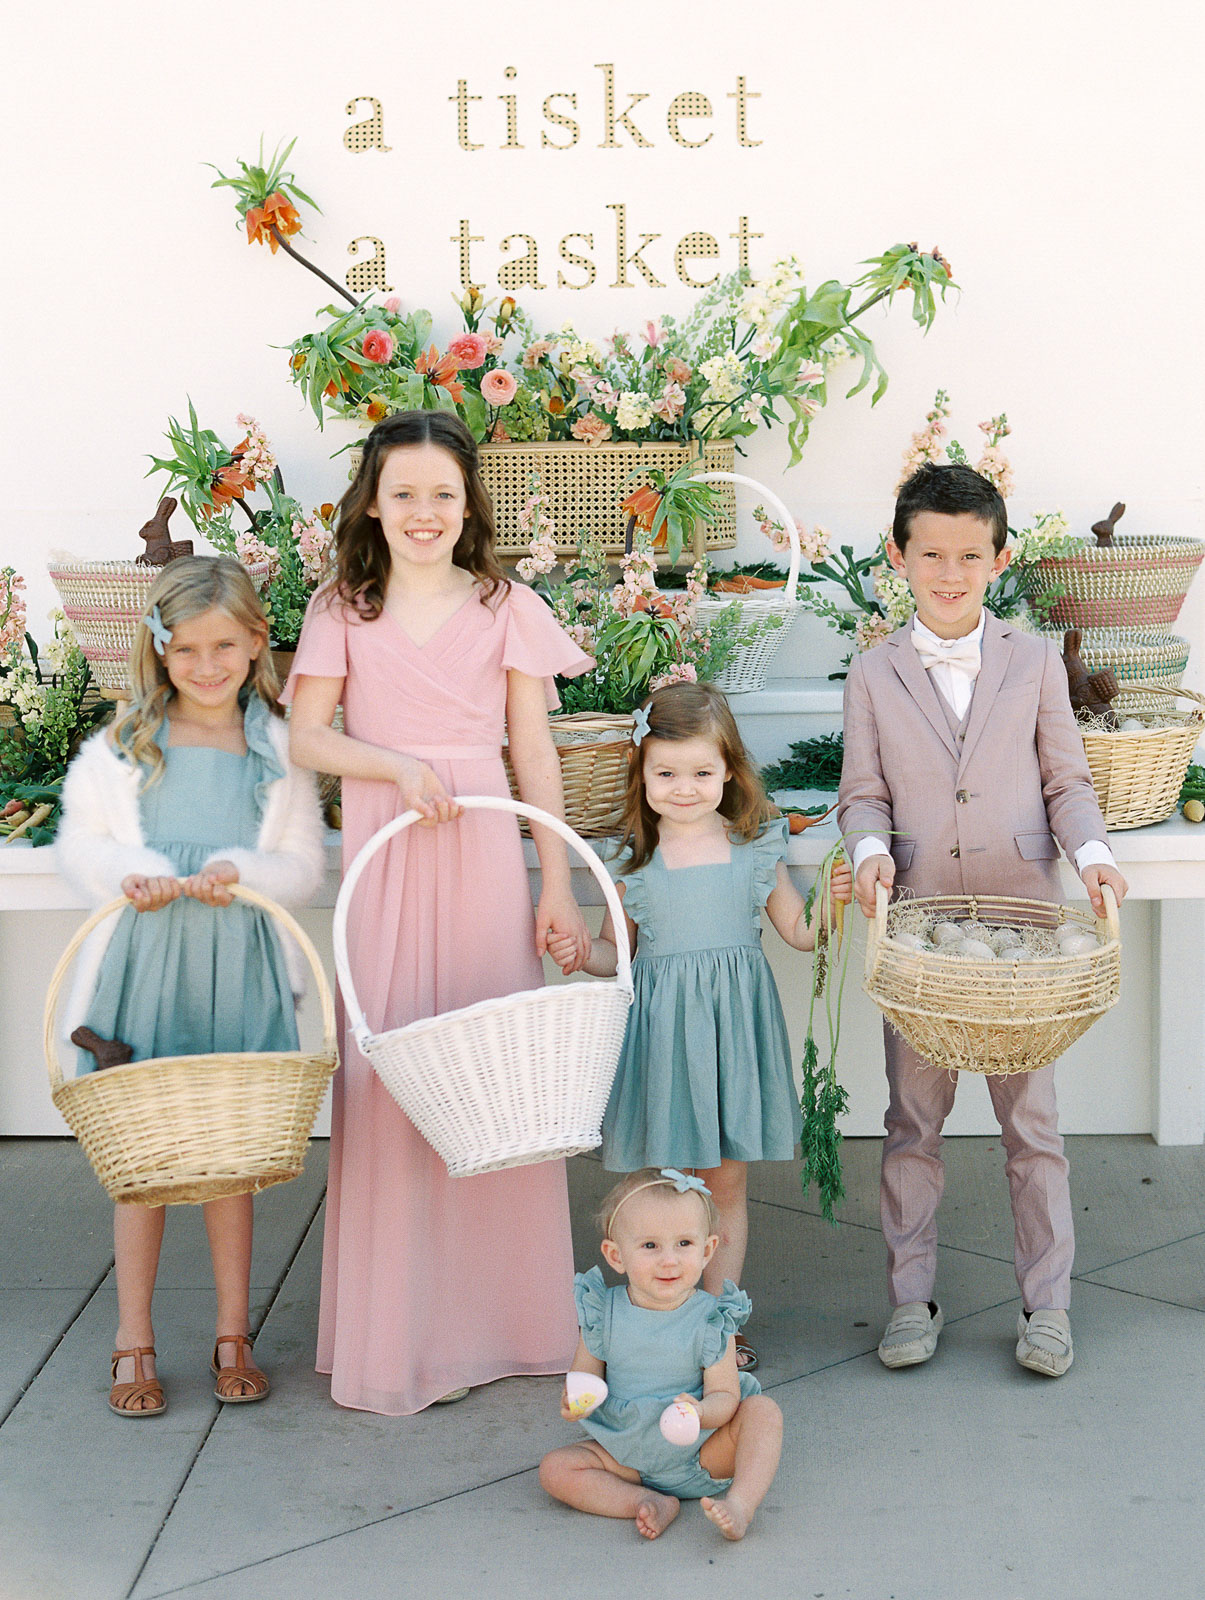 flower girls wearing pastel blue and pink outfits holding baskets